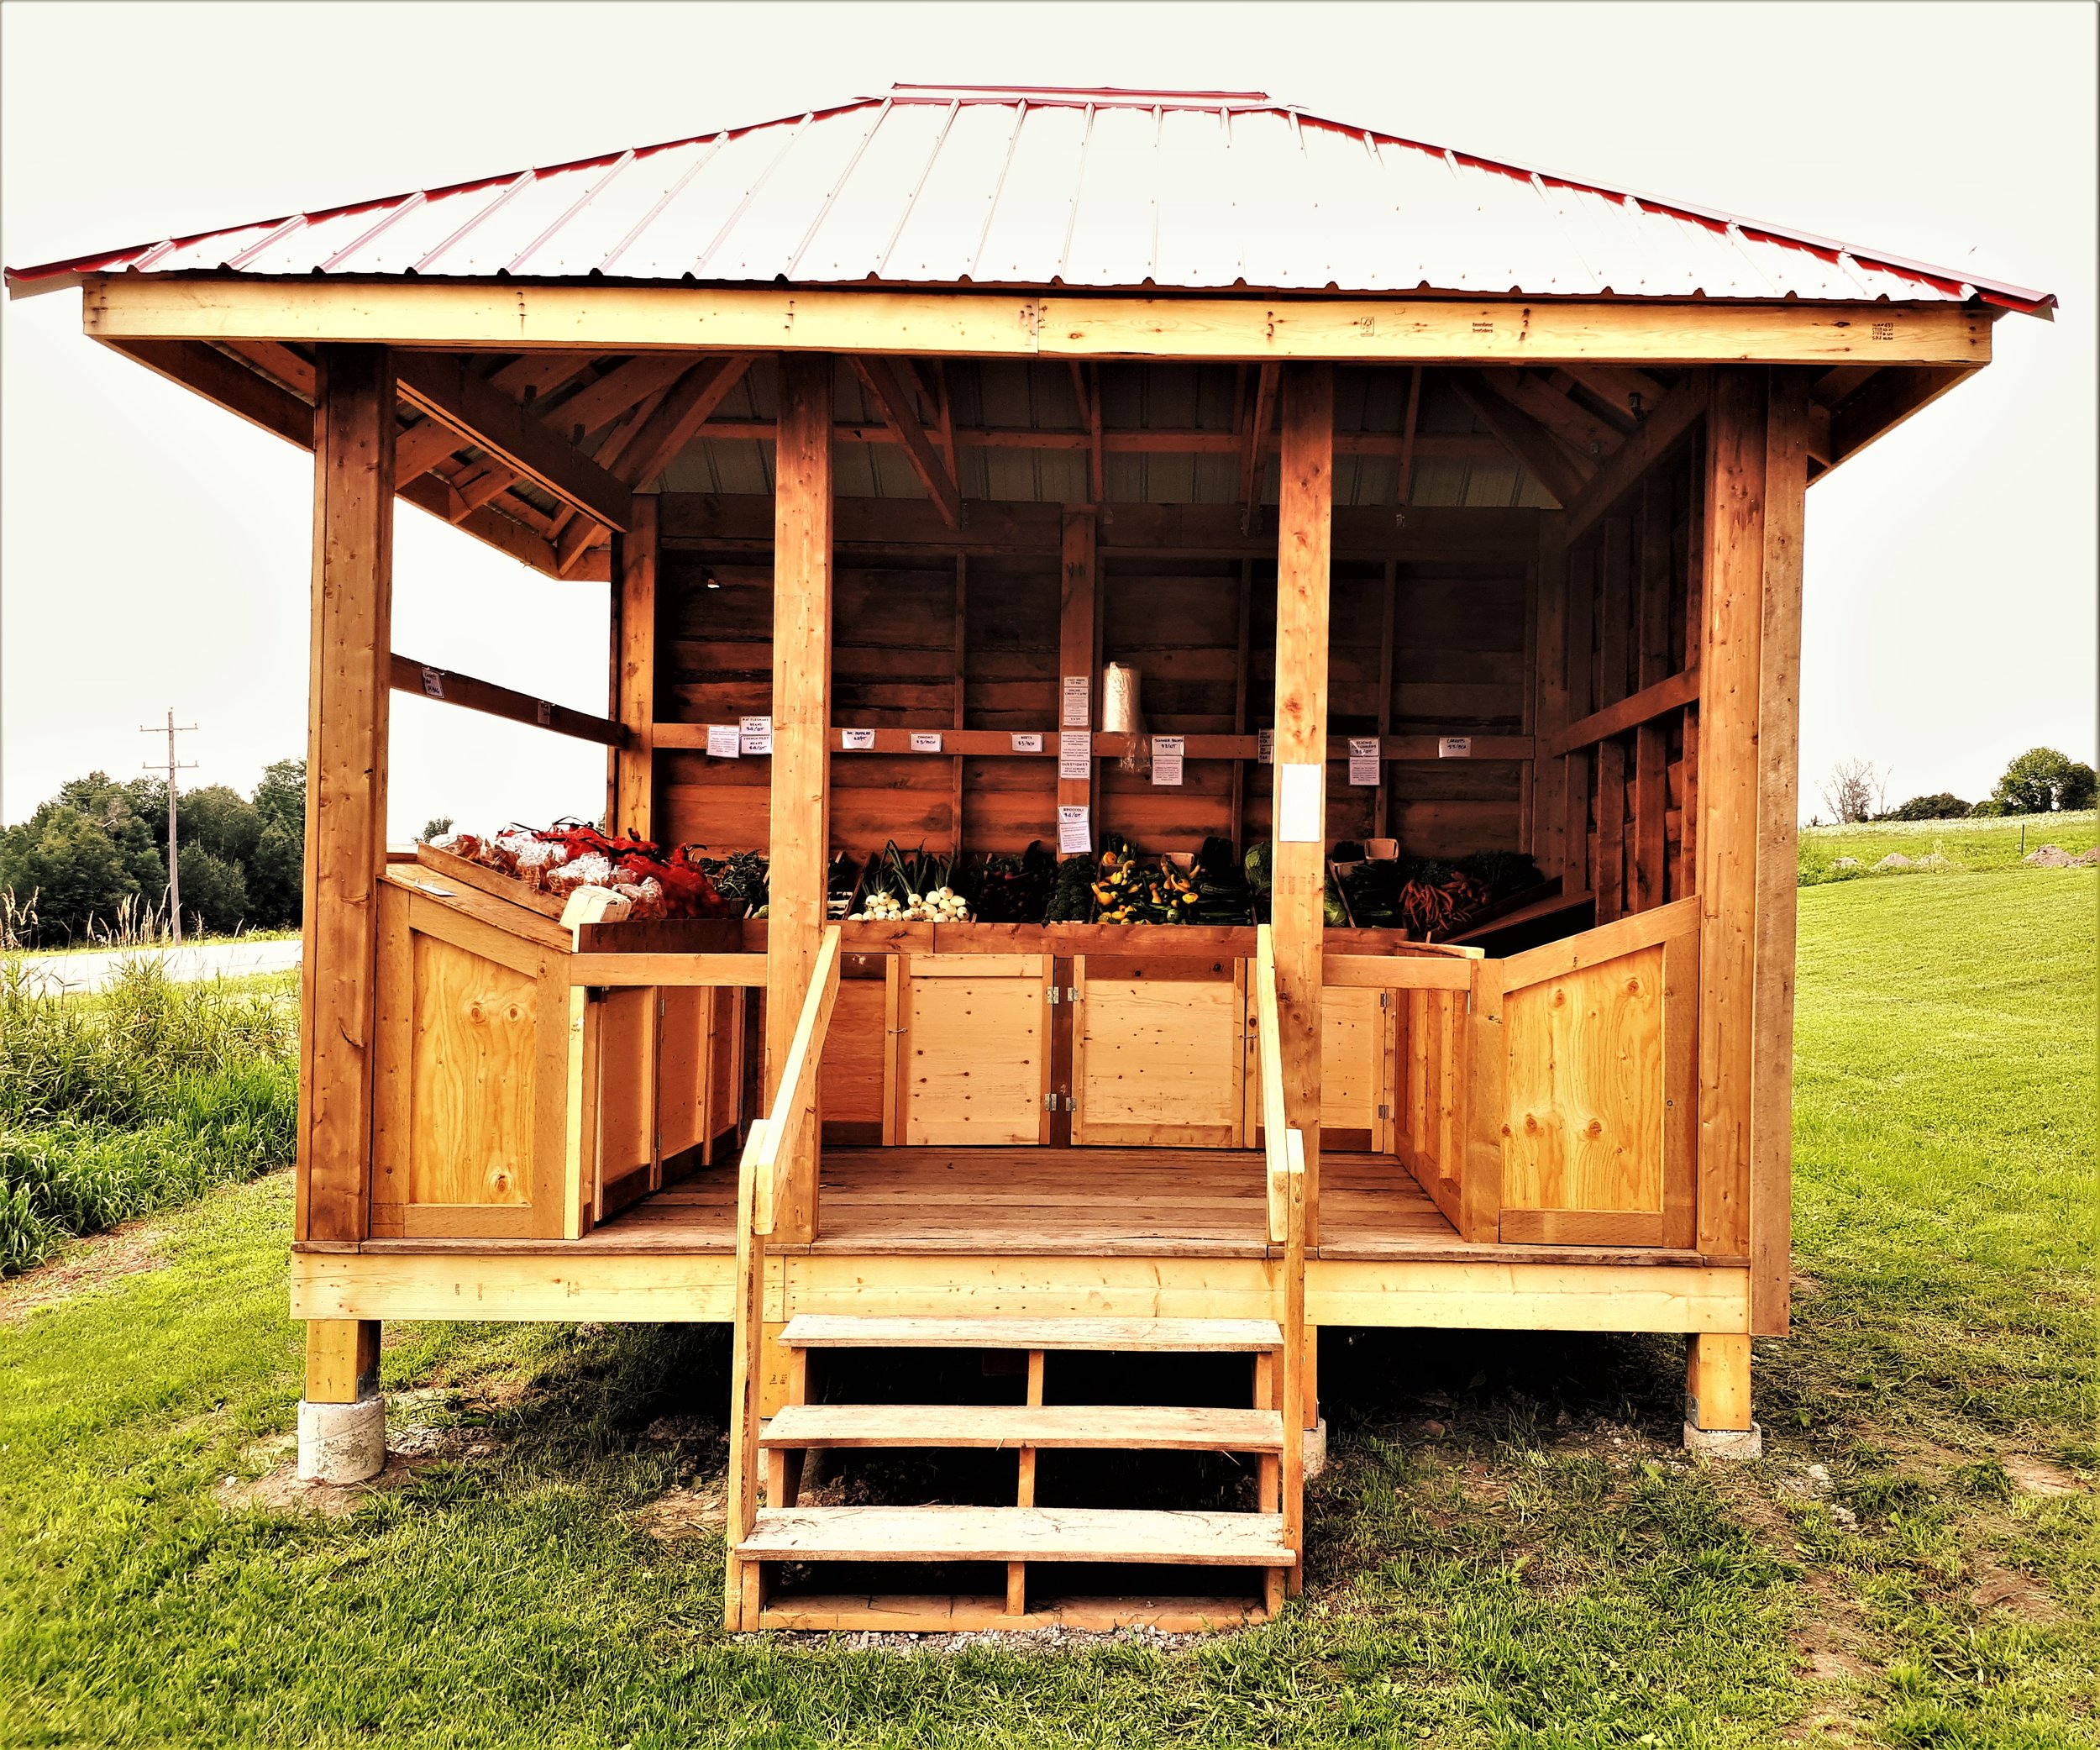 Our farm stand on County Road 42.